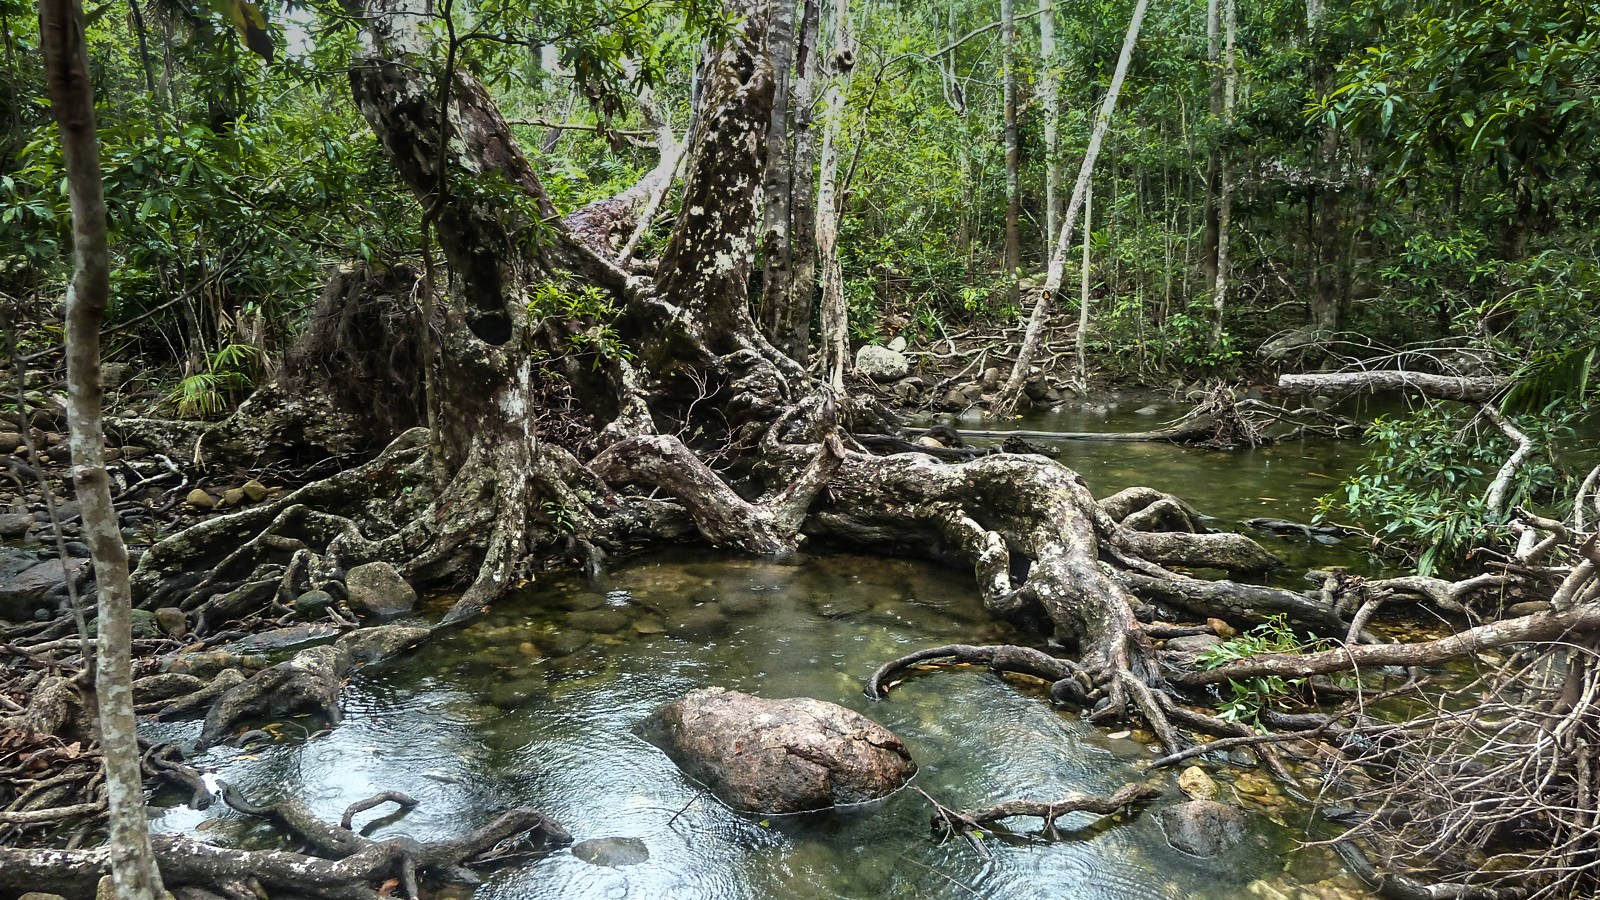 a photo of a tree in a river on hinchinbrook island.